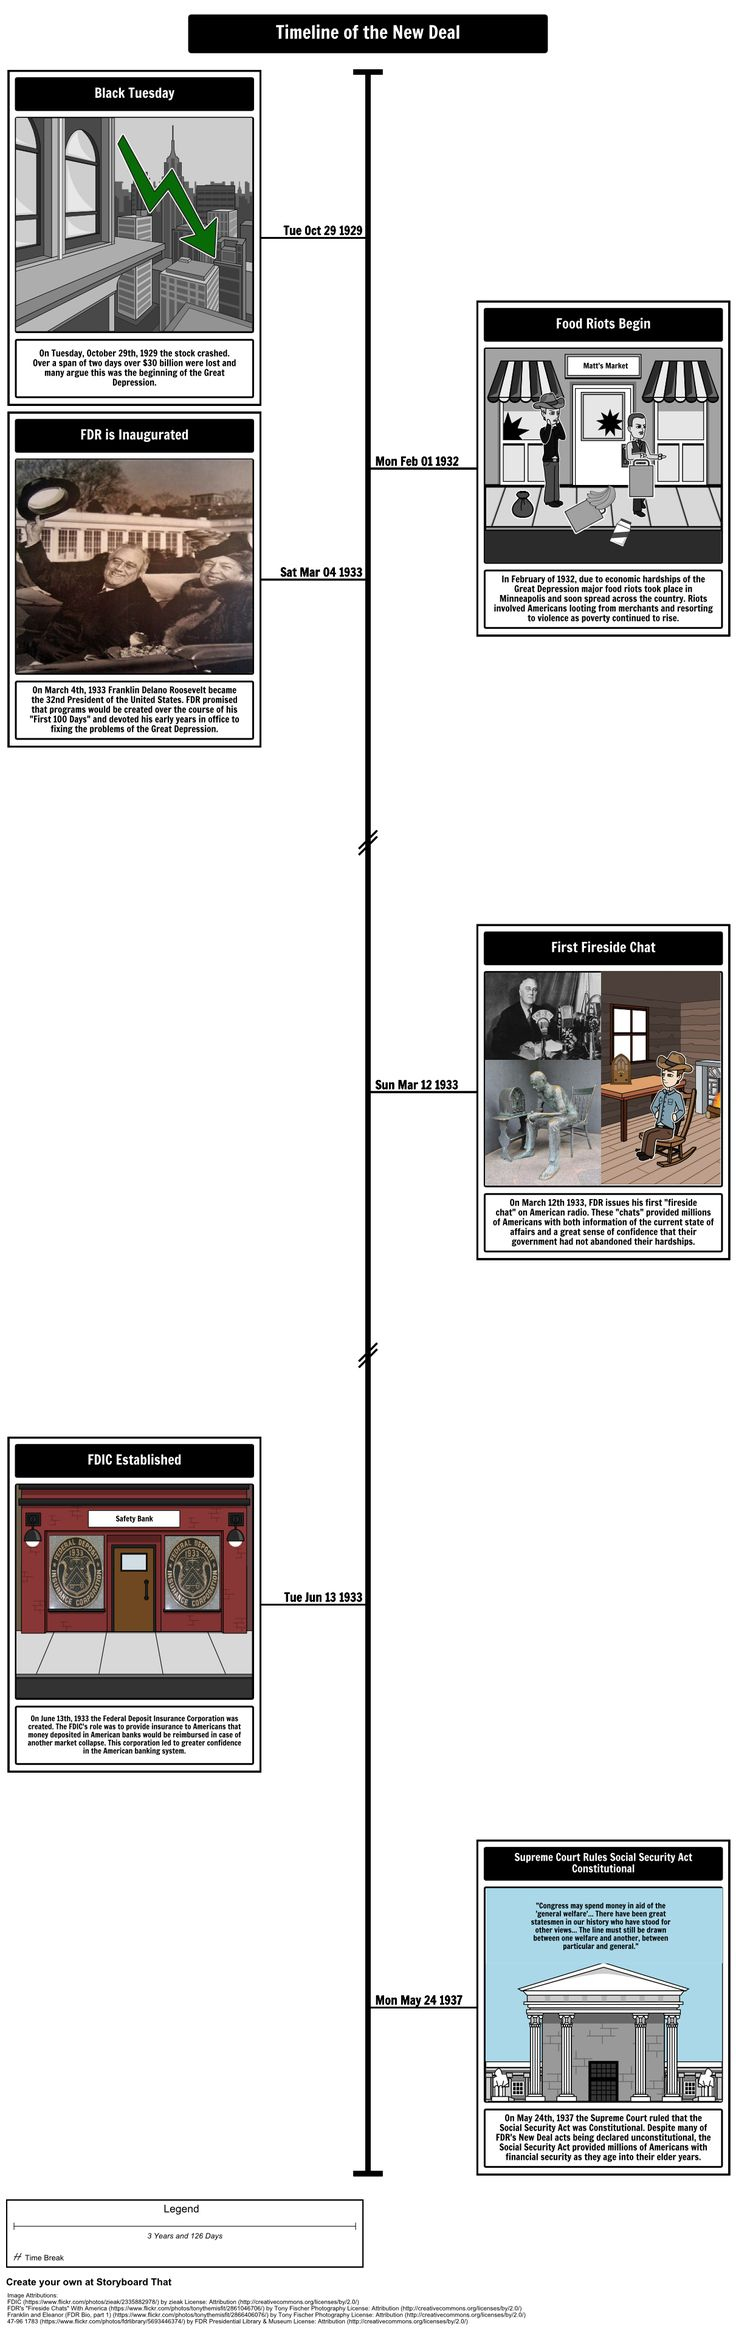 The New Deal - Timeline of The New Deal: Using at timeline storyboard, have students plot main events of FDR's New Deal. They should include effects of The New Deal and information about the Civil Works Administration and Relief Recovery Reform.